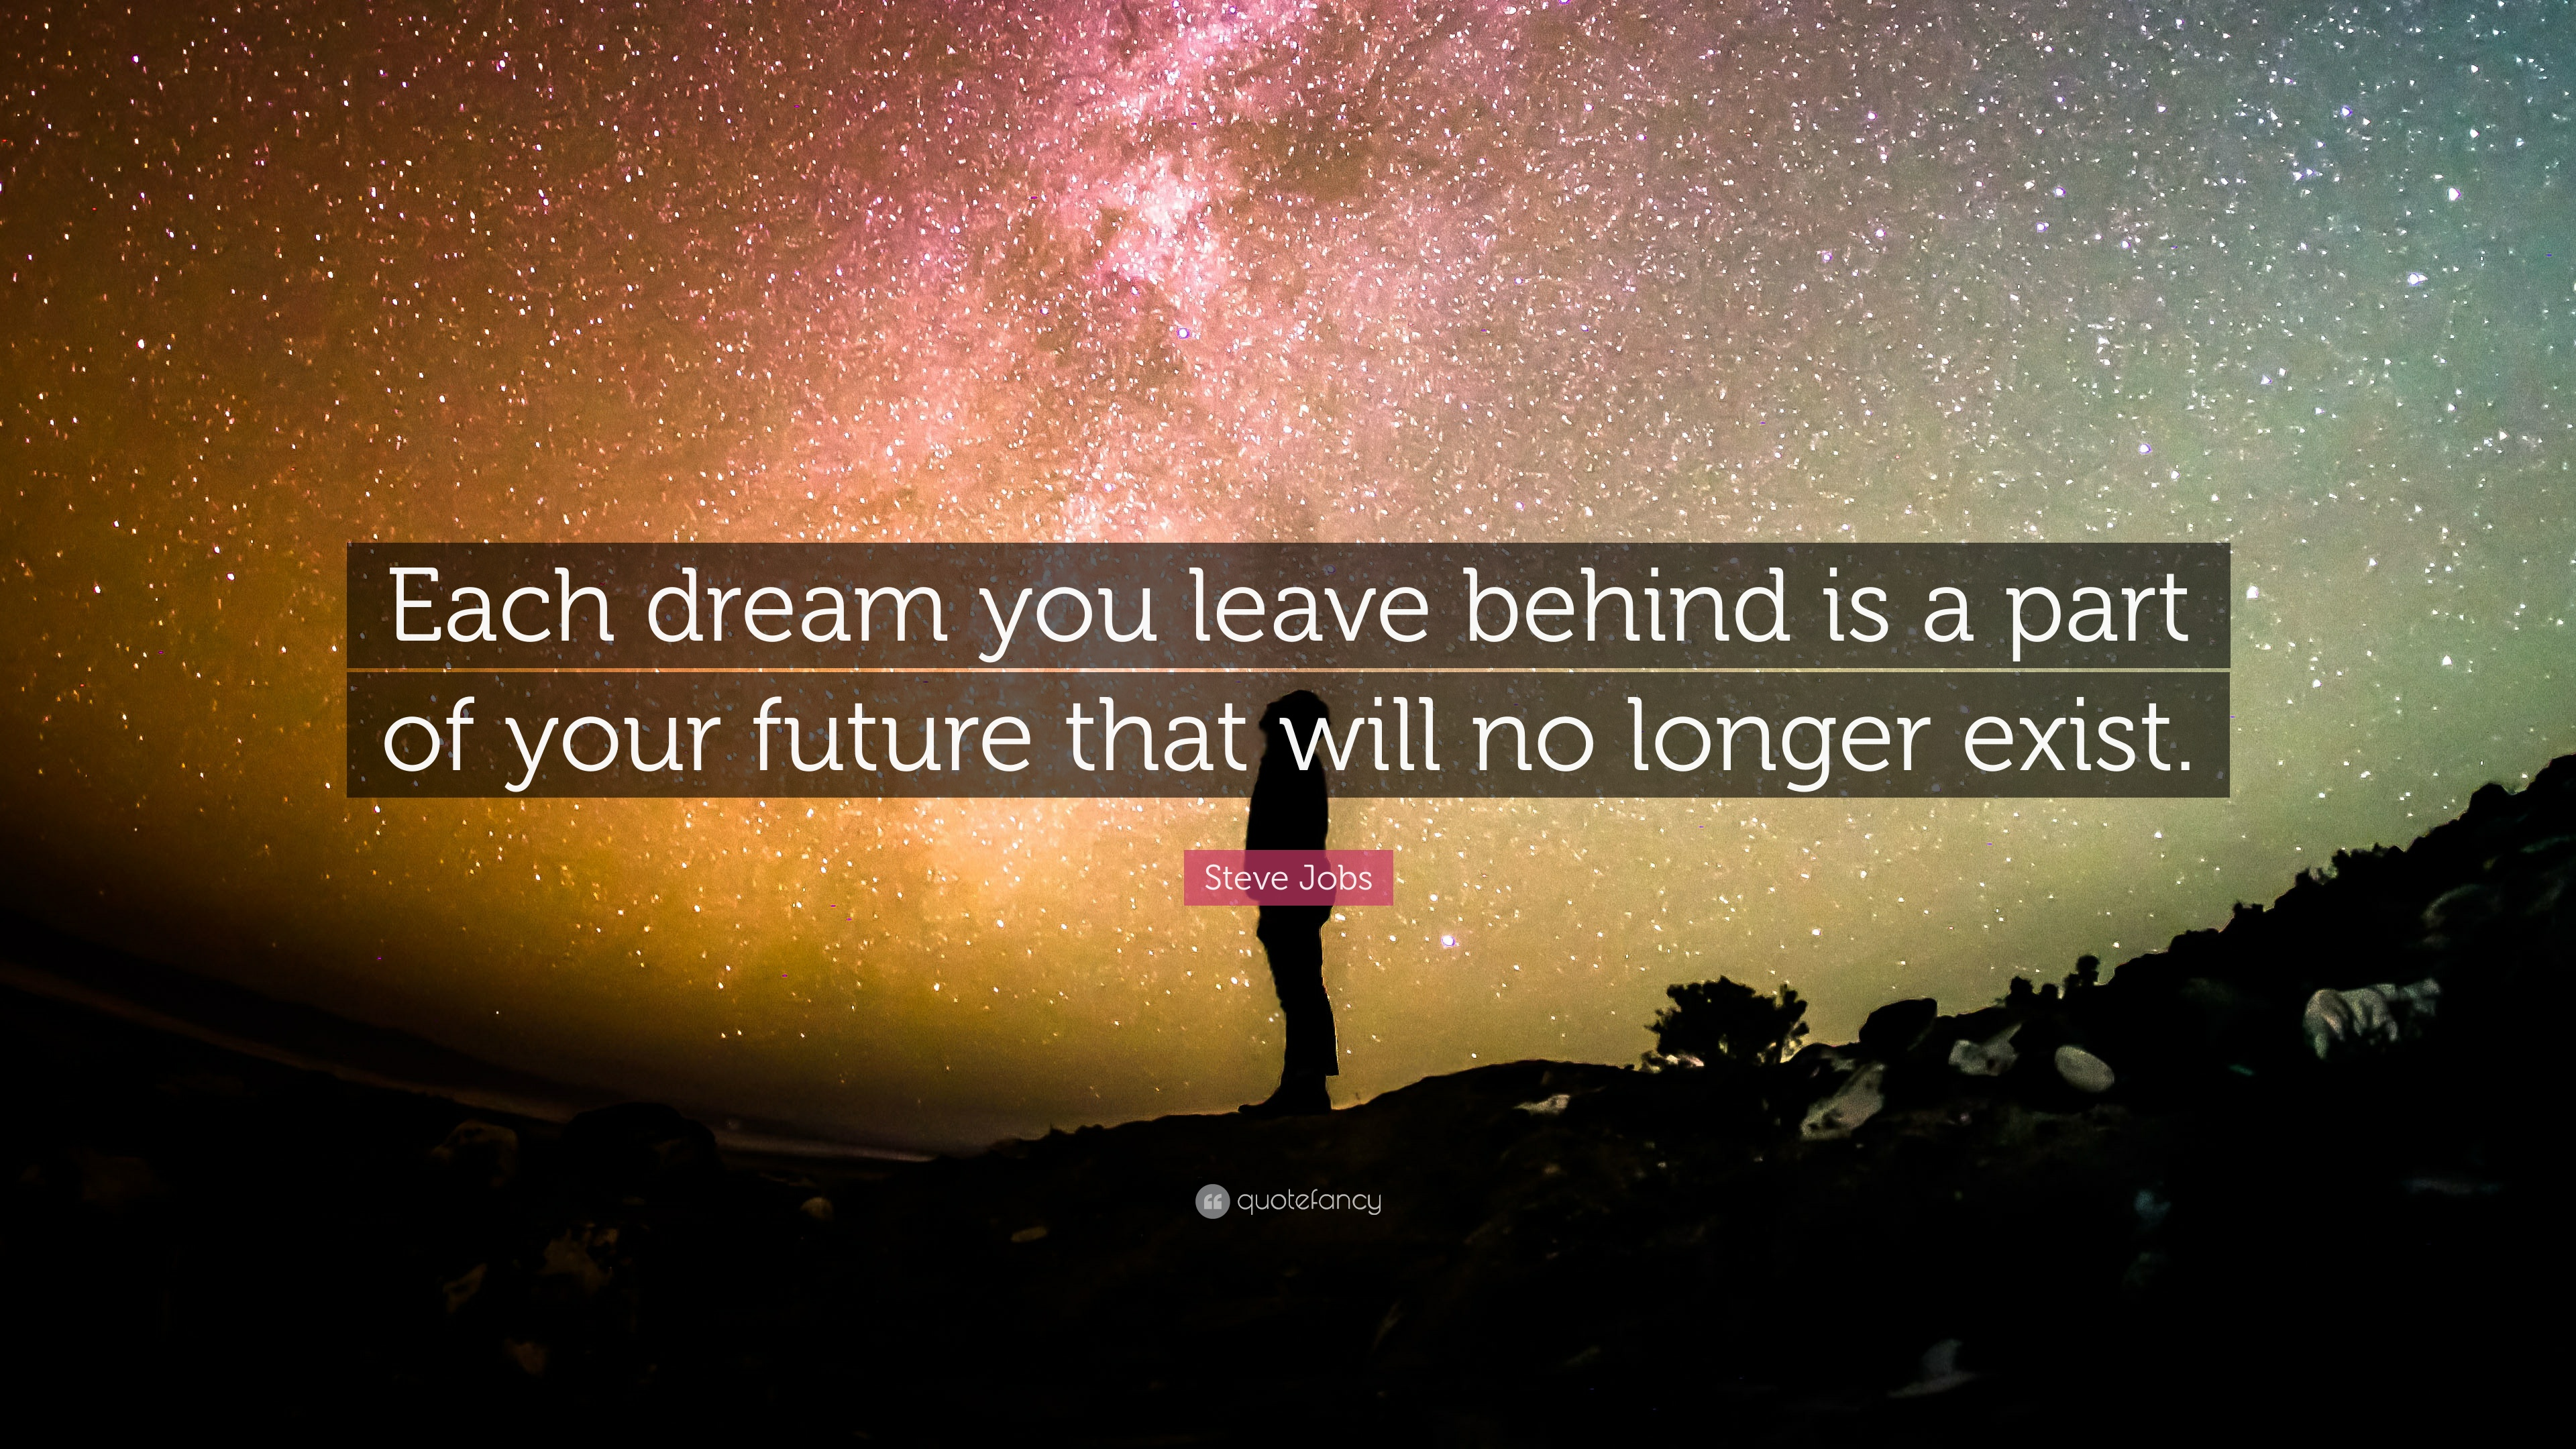 Quotes About Dreams - Socrates Quotes Smart People - HD Wallpaper